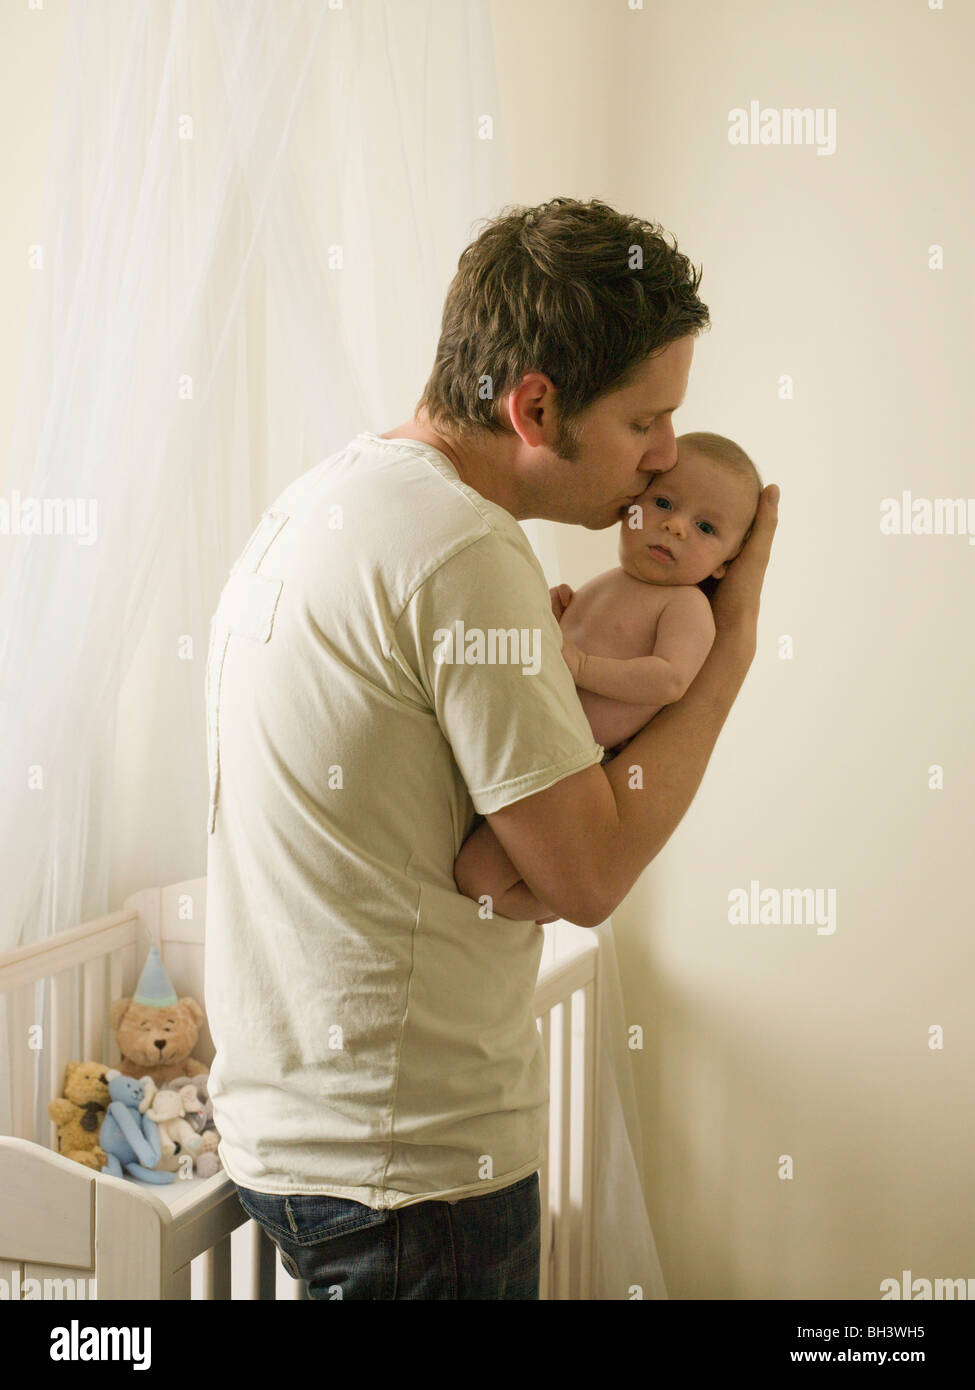 A father holding his new born baby - Stock Image